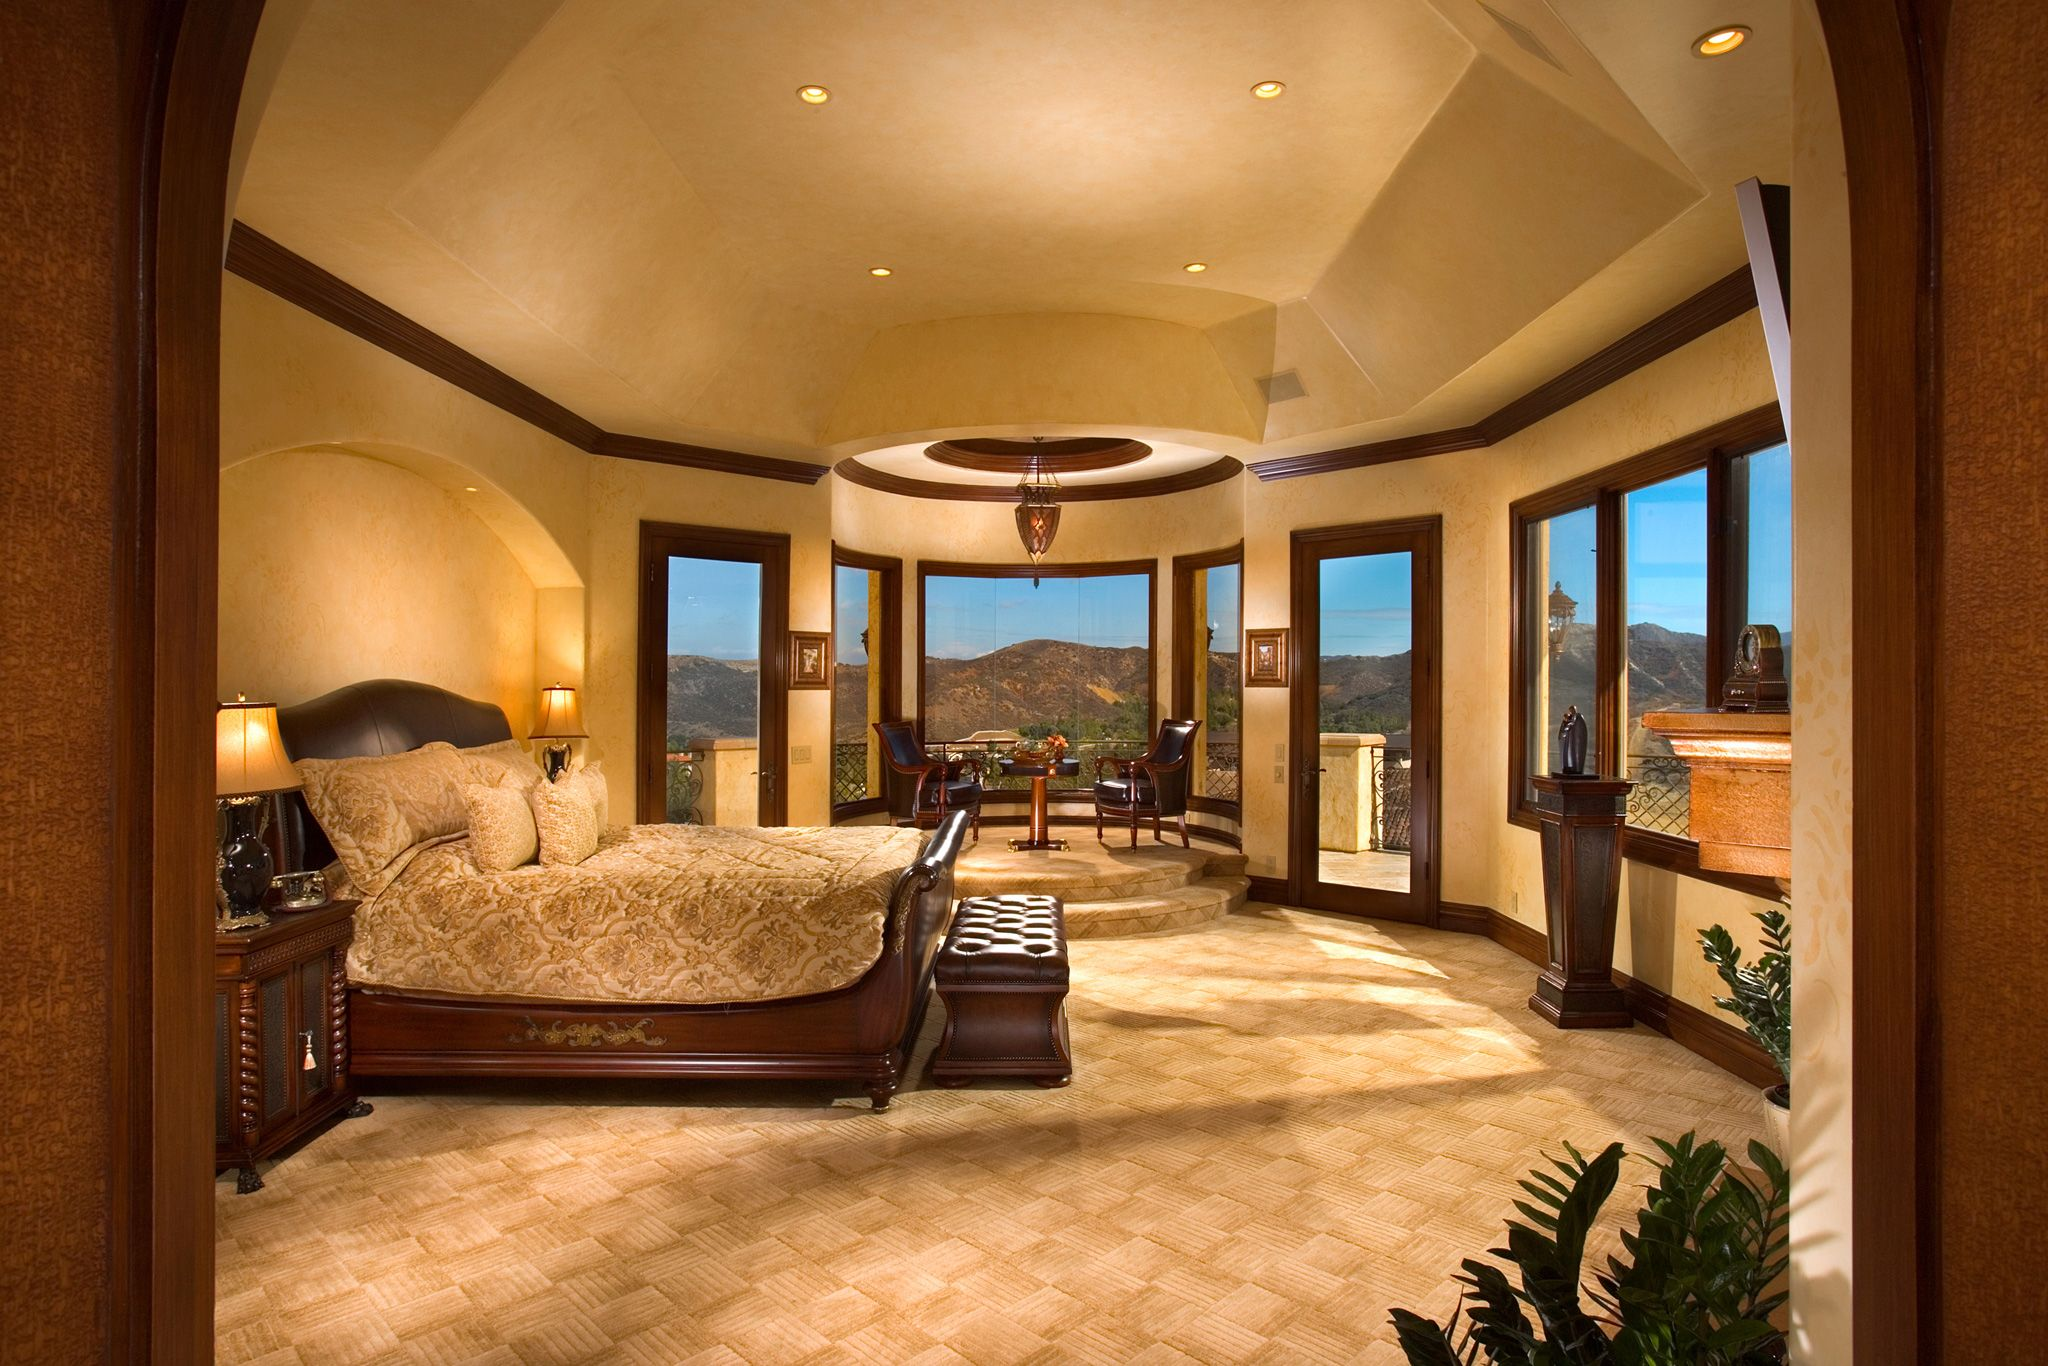 21 incredible master bedrooms design ideas luxury master for Master bedroom images